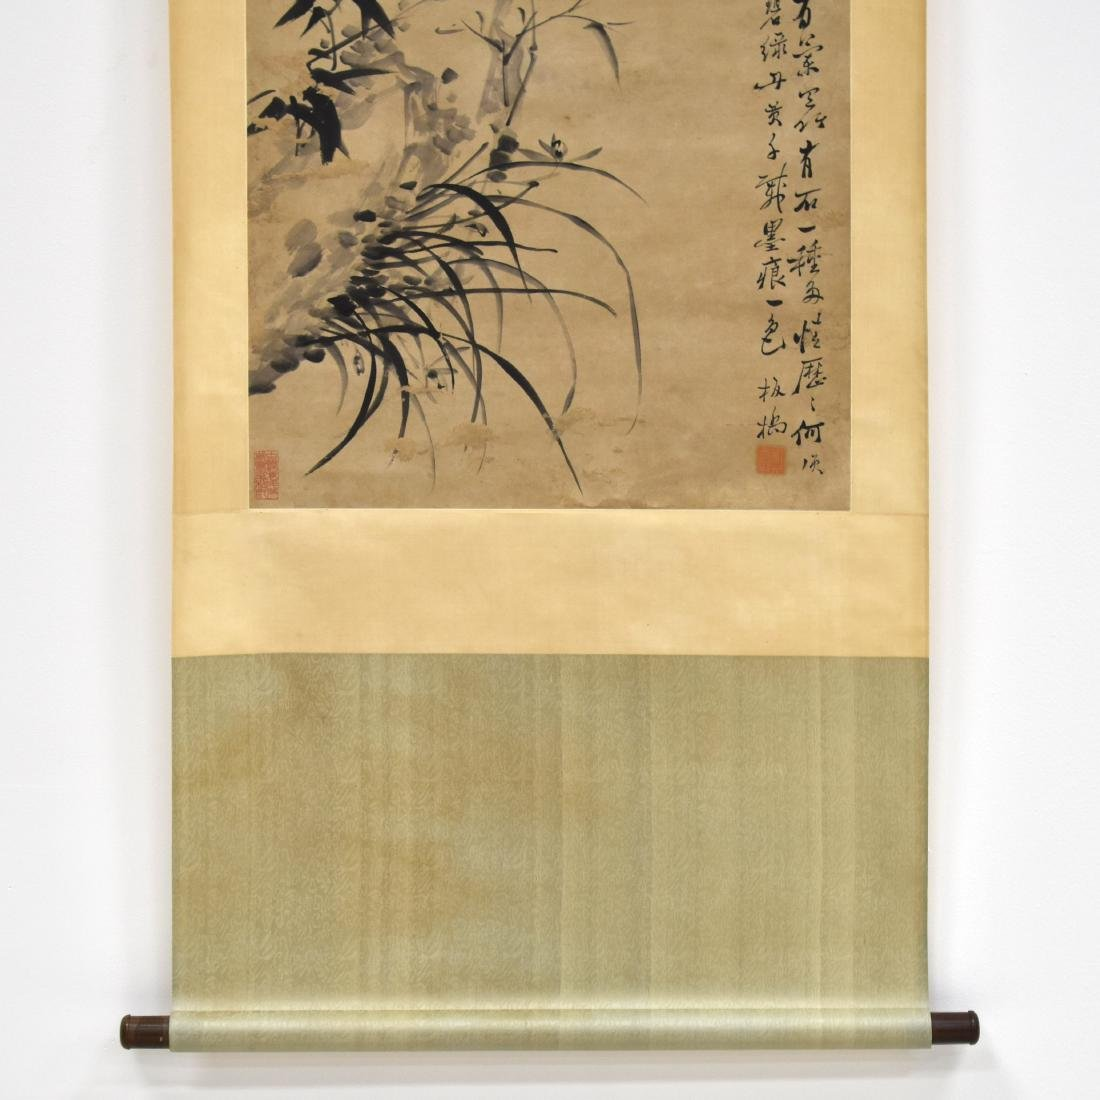 CHINESE SCROLL PAINTING OF BAMBOO SHOOTS - 4